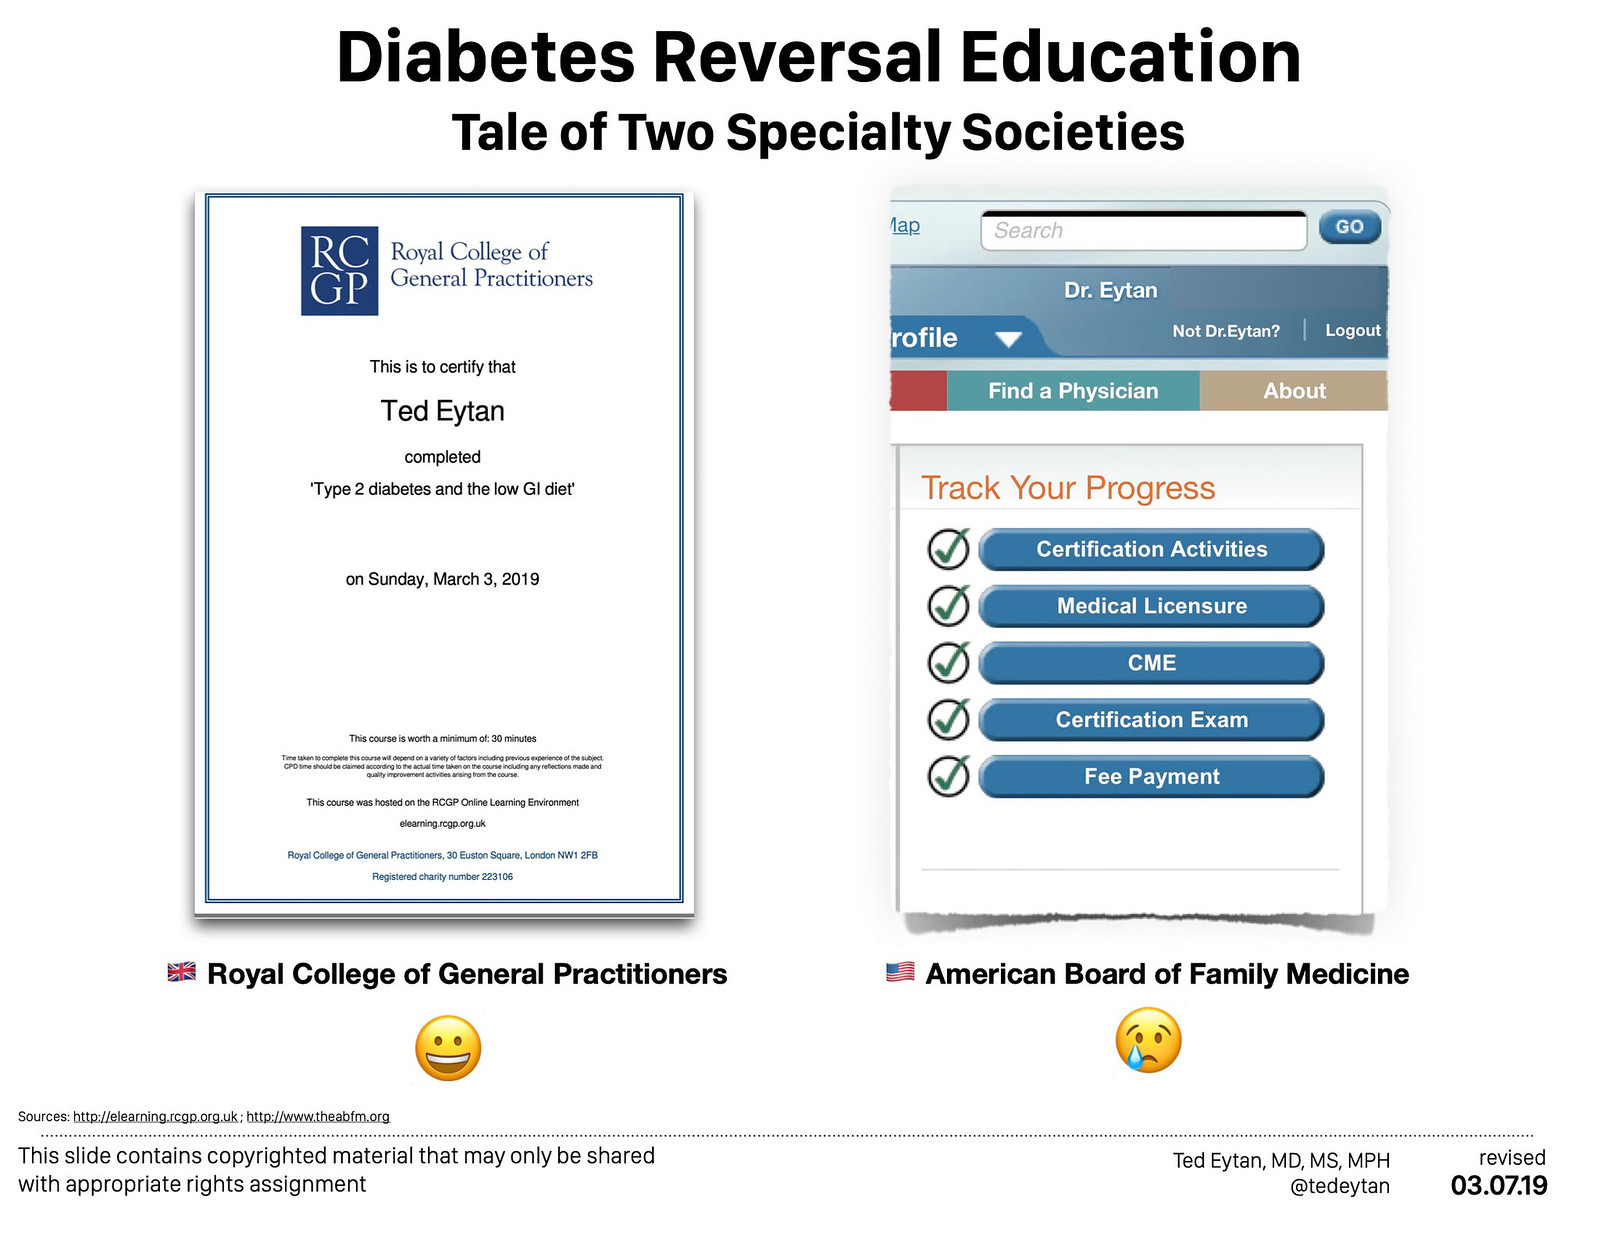 Just Completed: RCGP e-learning  Course: Type 2 diabetes and the low GI diet, comparing to my ABFM educational experience